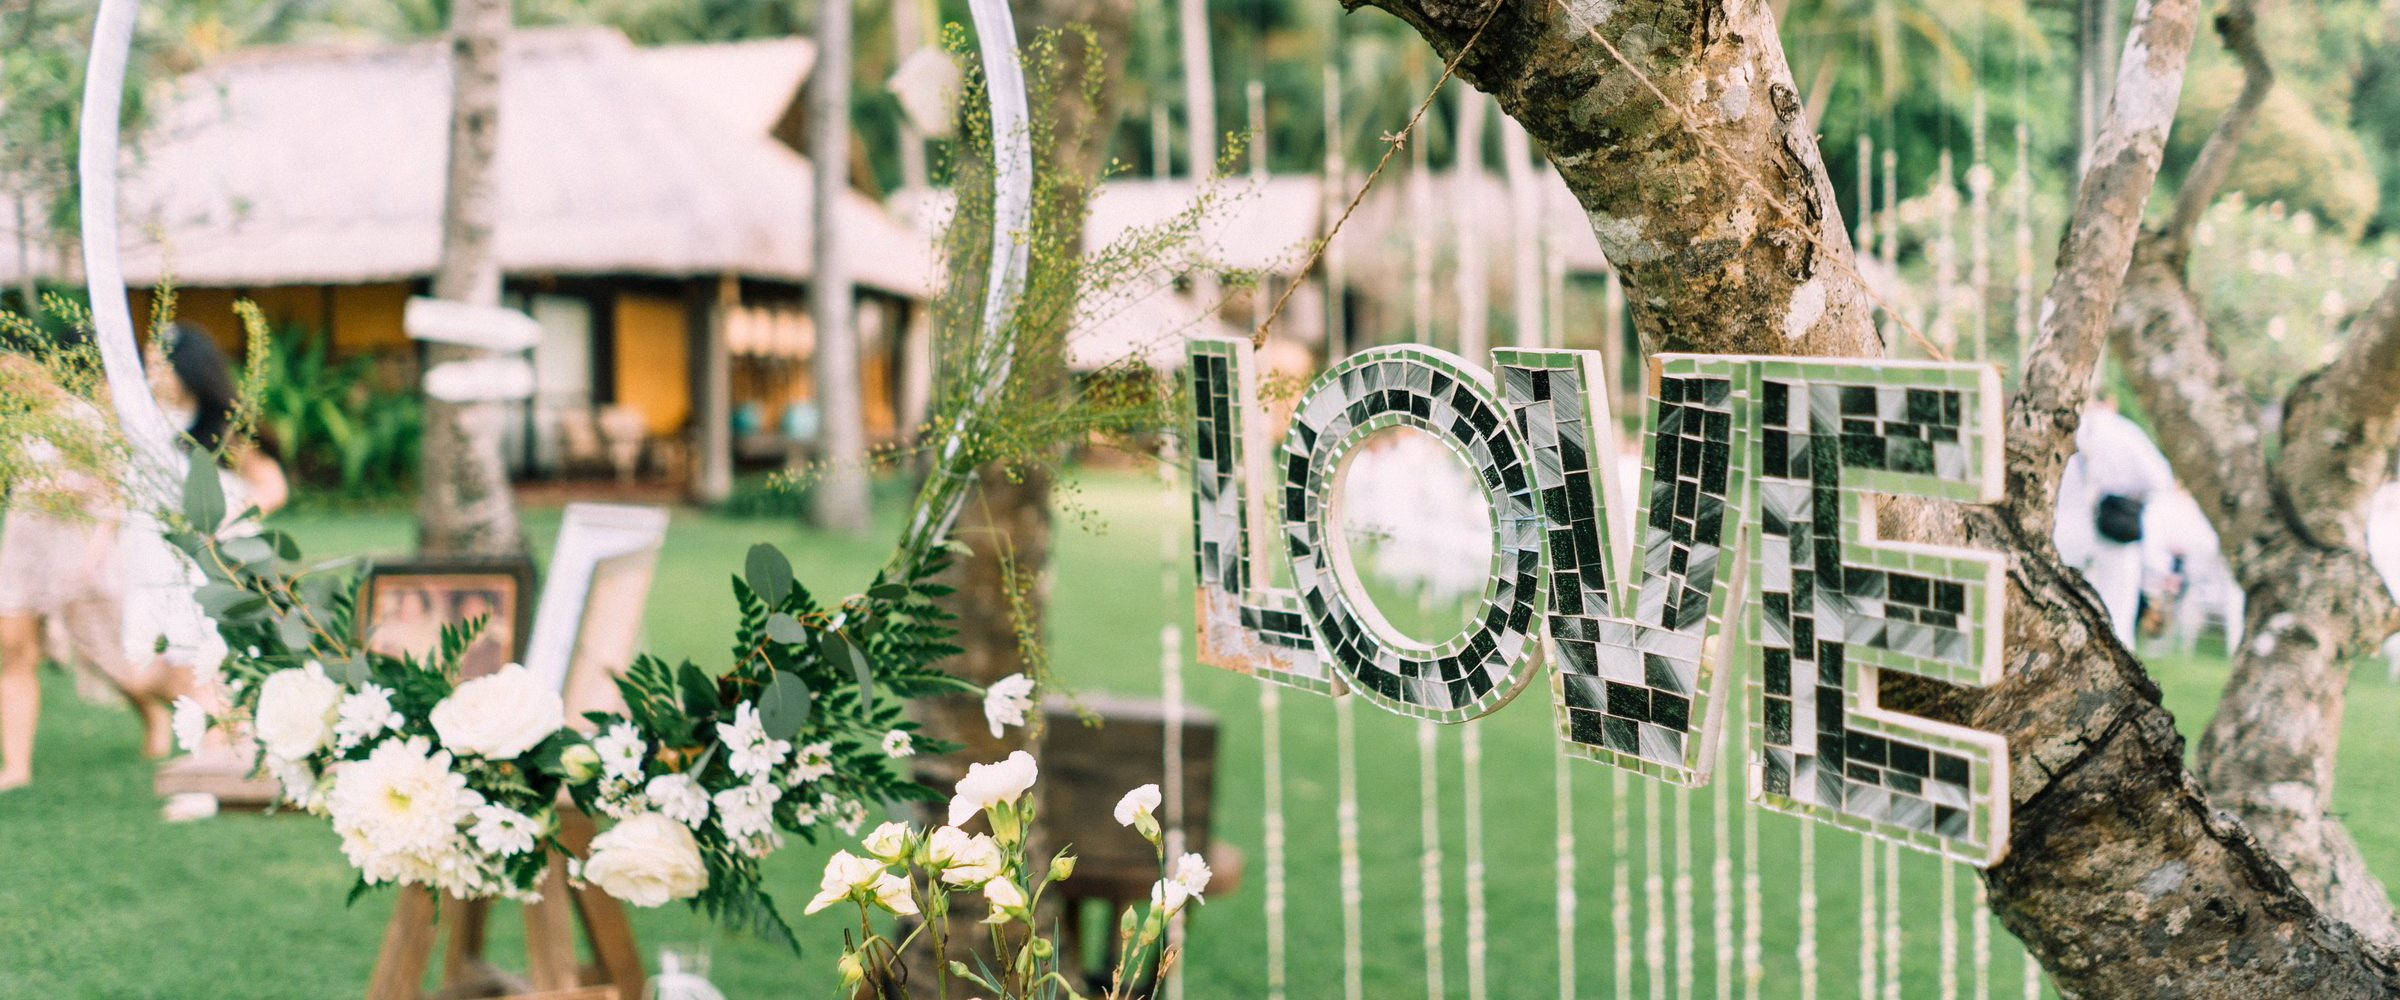 Jeeva Klui Resort - Destination Wedding Venue Lombok